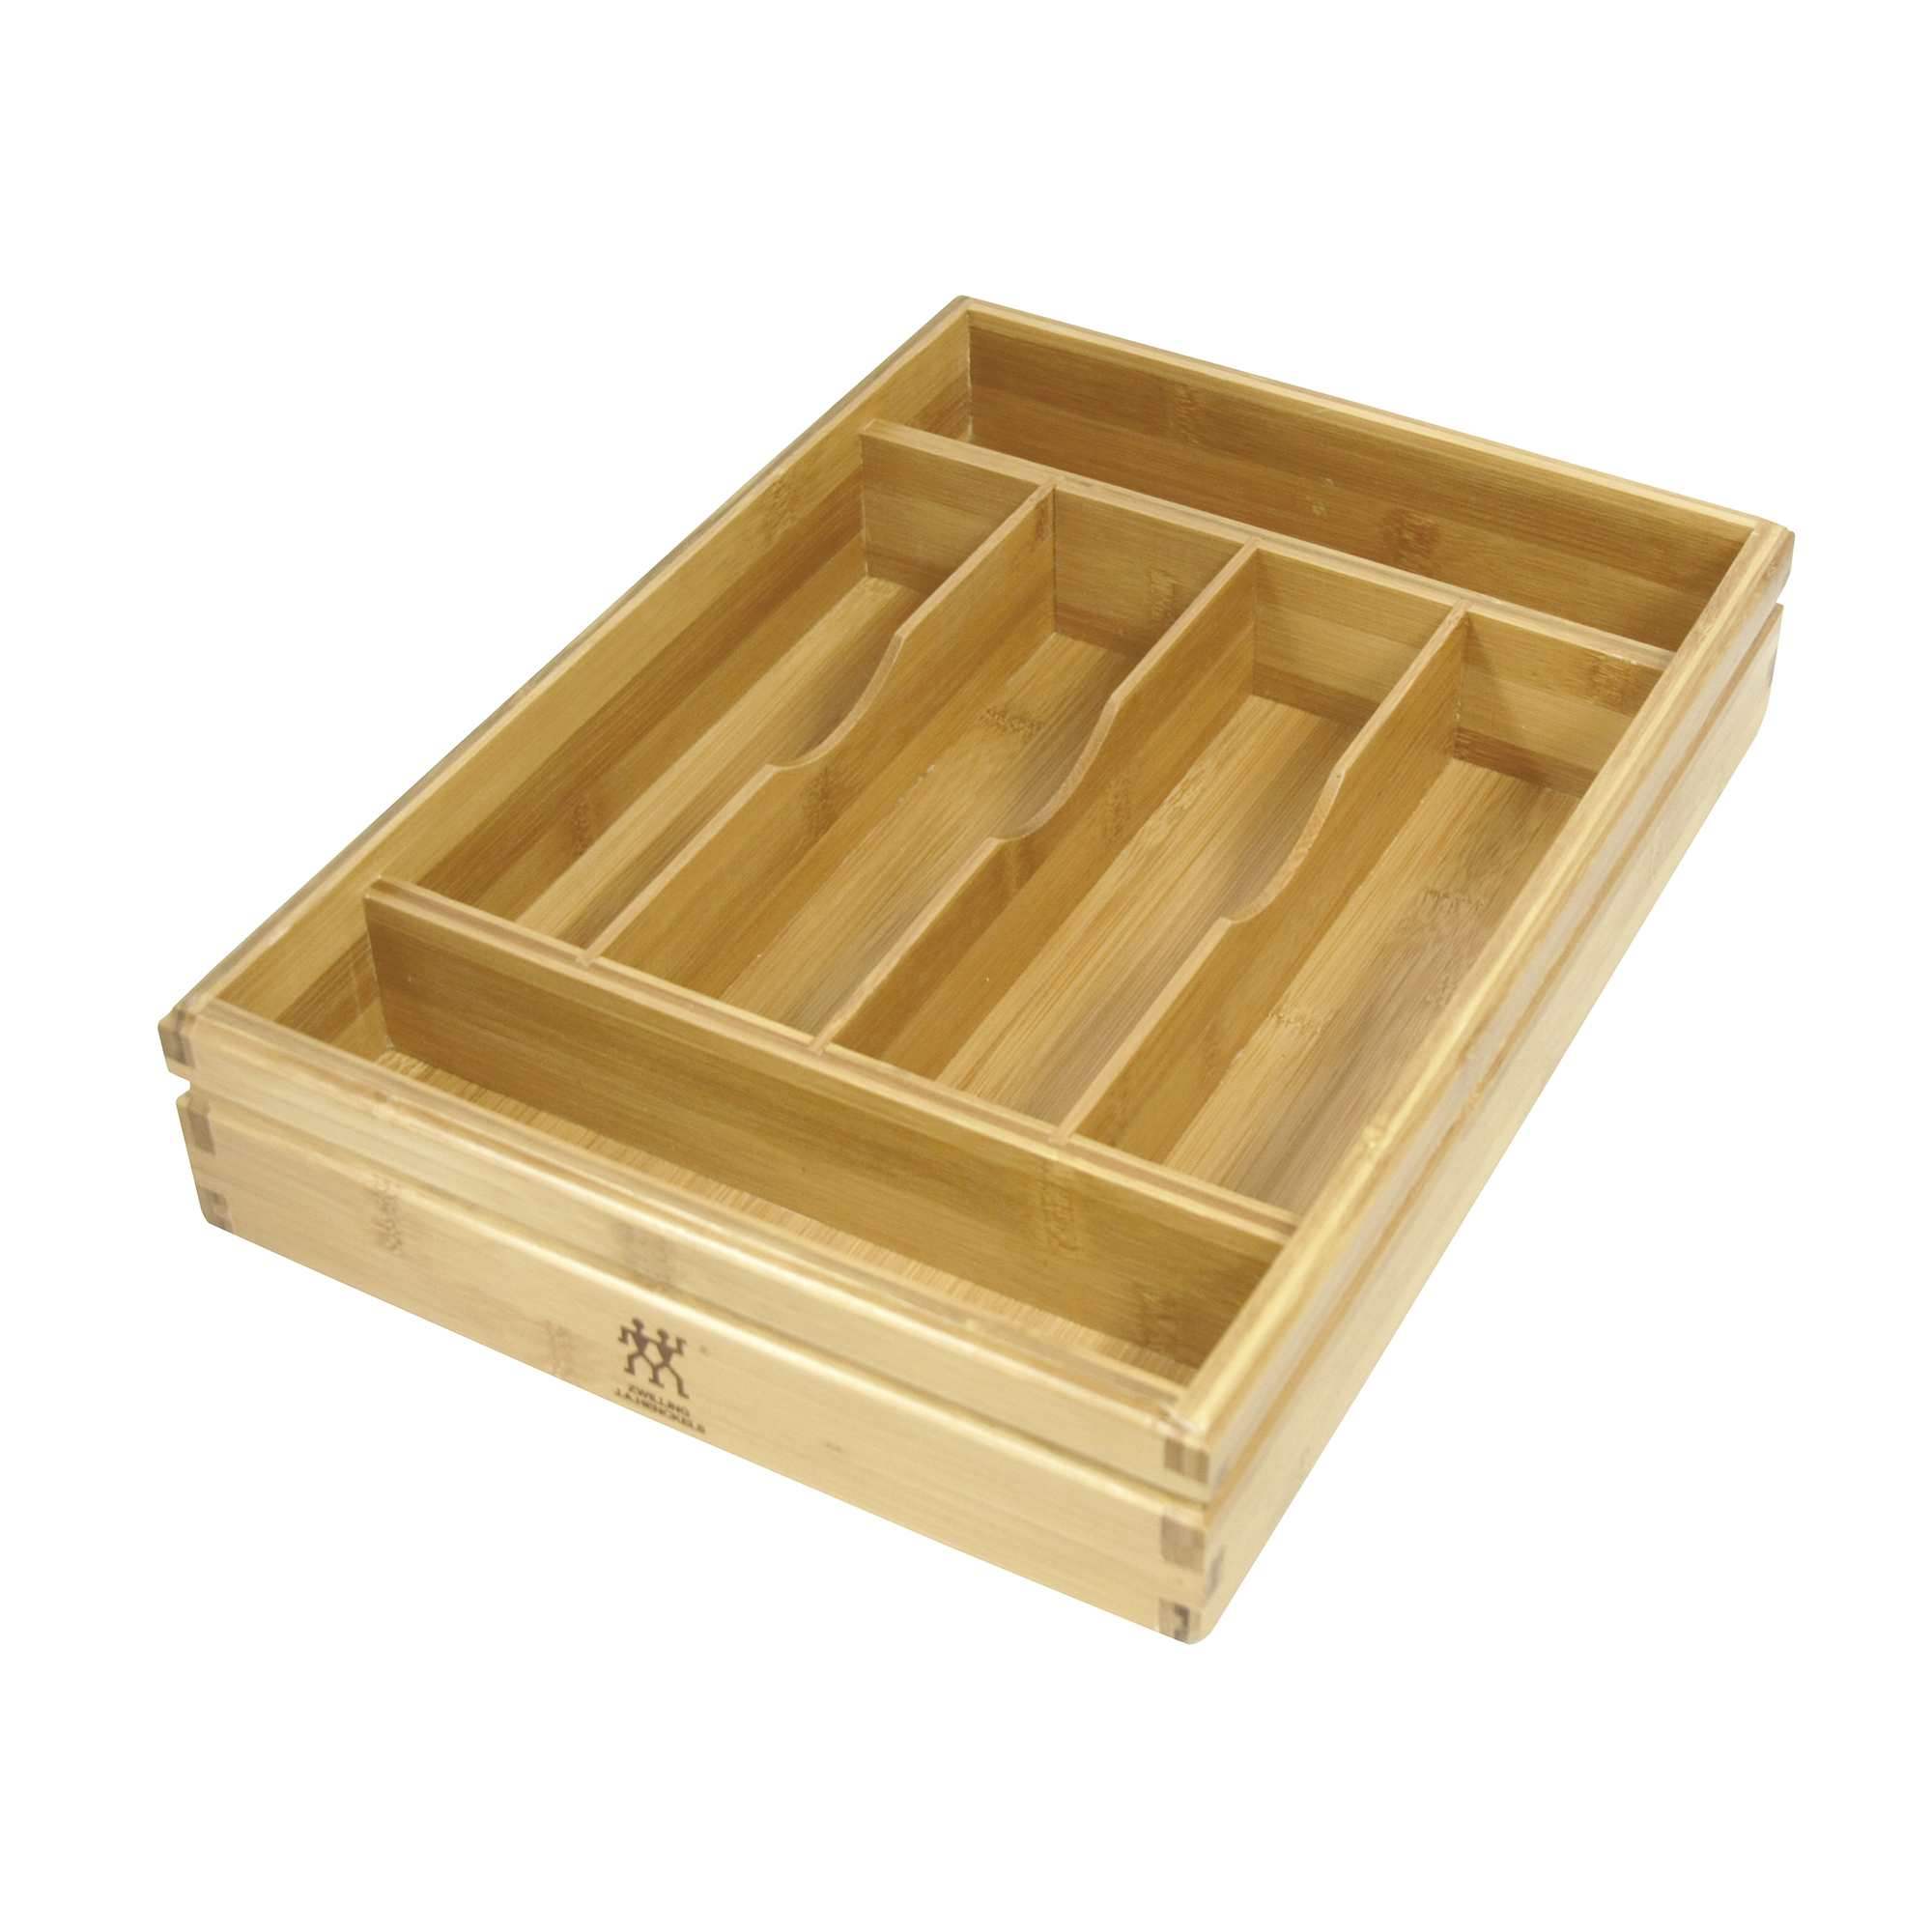 ZWILLING J.A. Henckels Bamboo Flatware Storage Tray